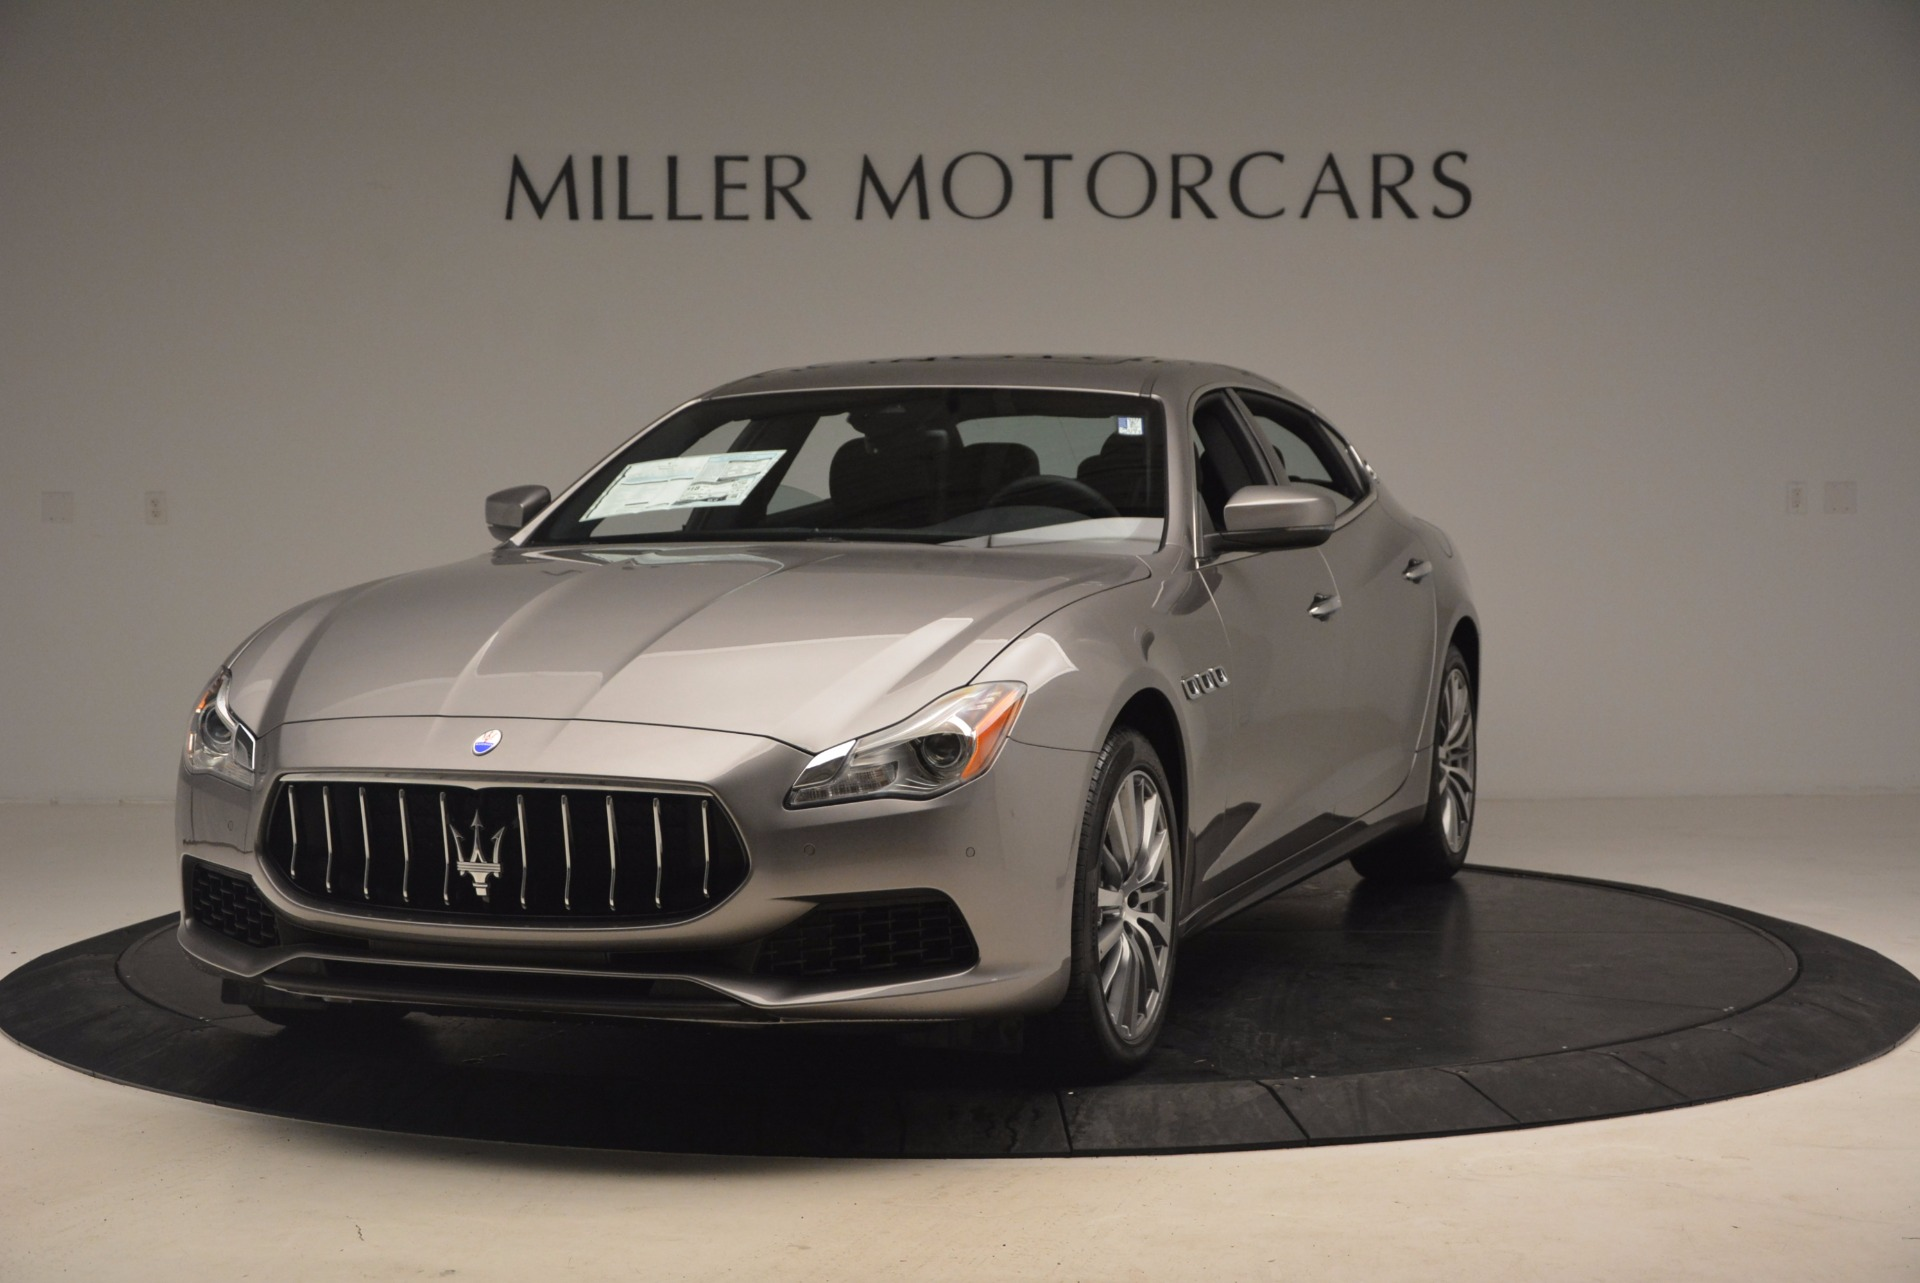 New 2017 Maserati Quattroporte SQ4 for sale Sold at Maserati of Westport in Westport CT 06880 1